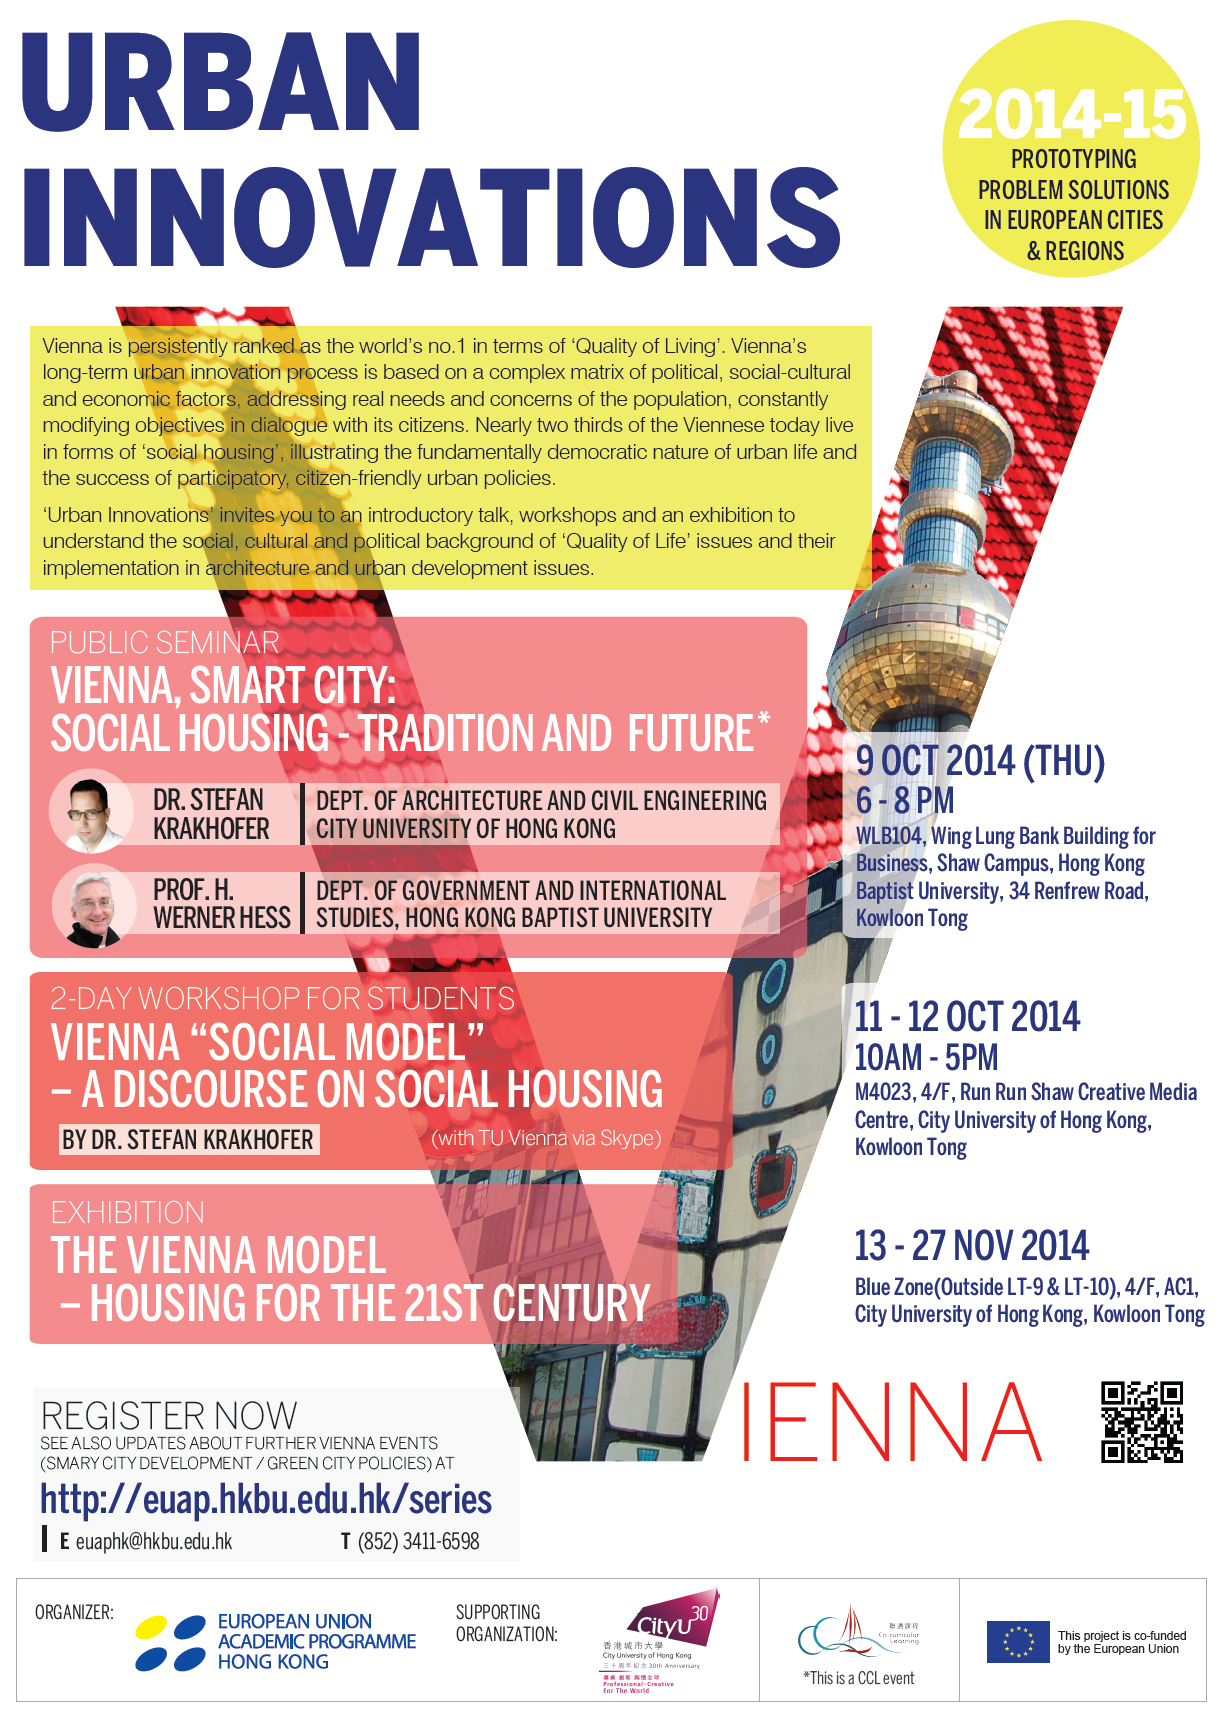 Vienna, Smart City: Social Housing - Tradition and Future